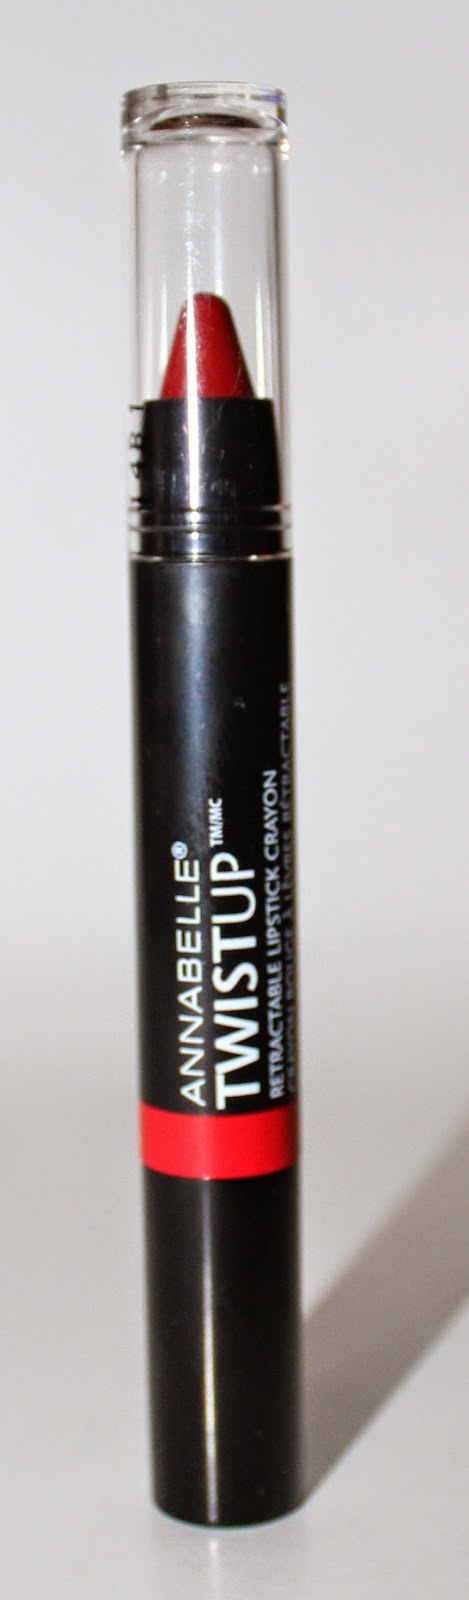 Annabelle TwistUp Retractable Lipstick Crayon in Flirtini